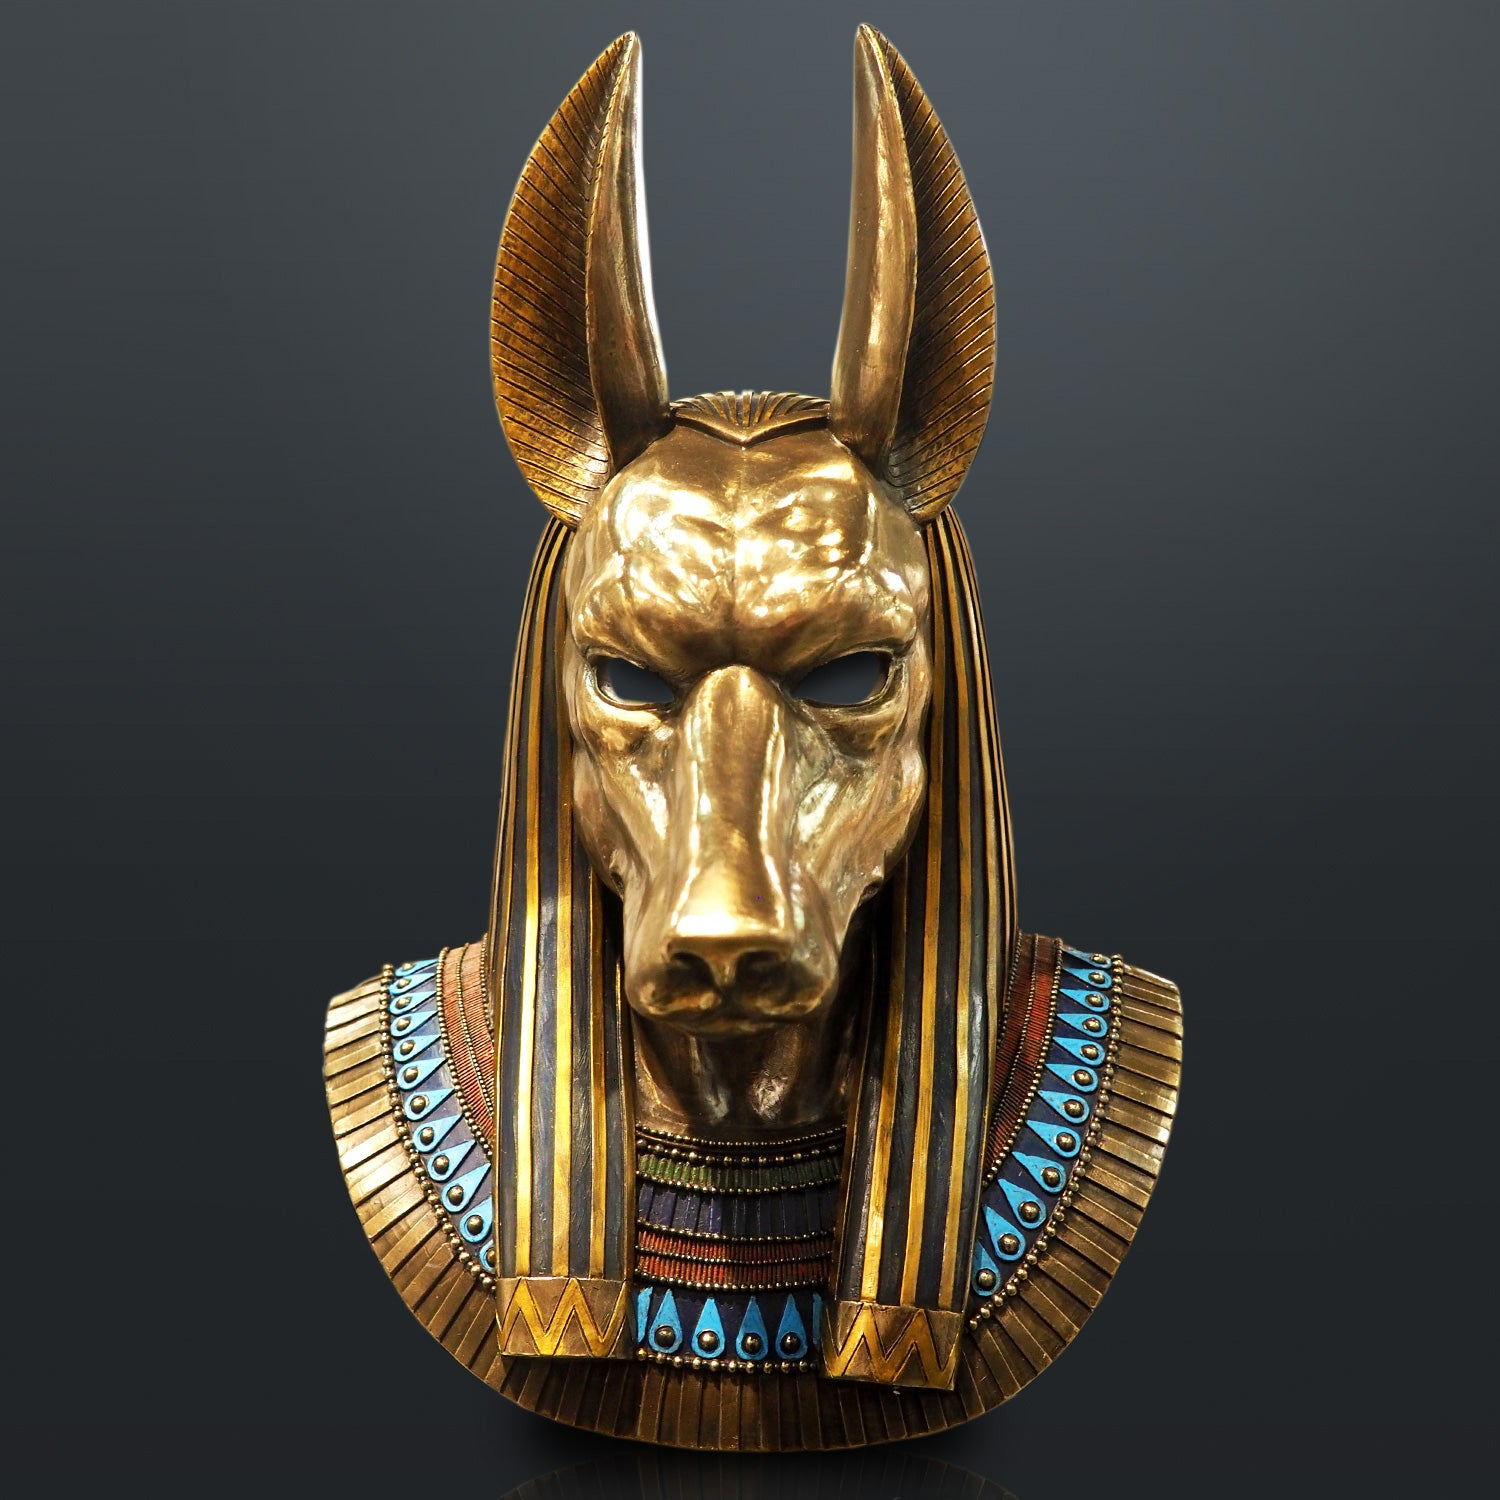 Statuette of the god Anubis Made in Egypt